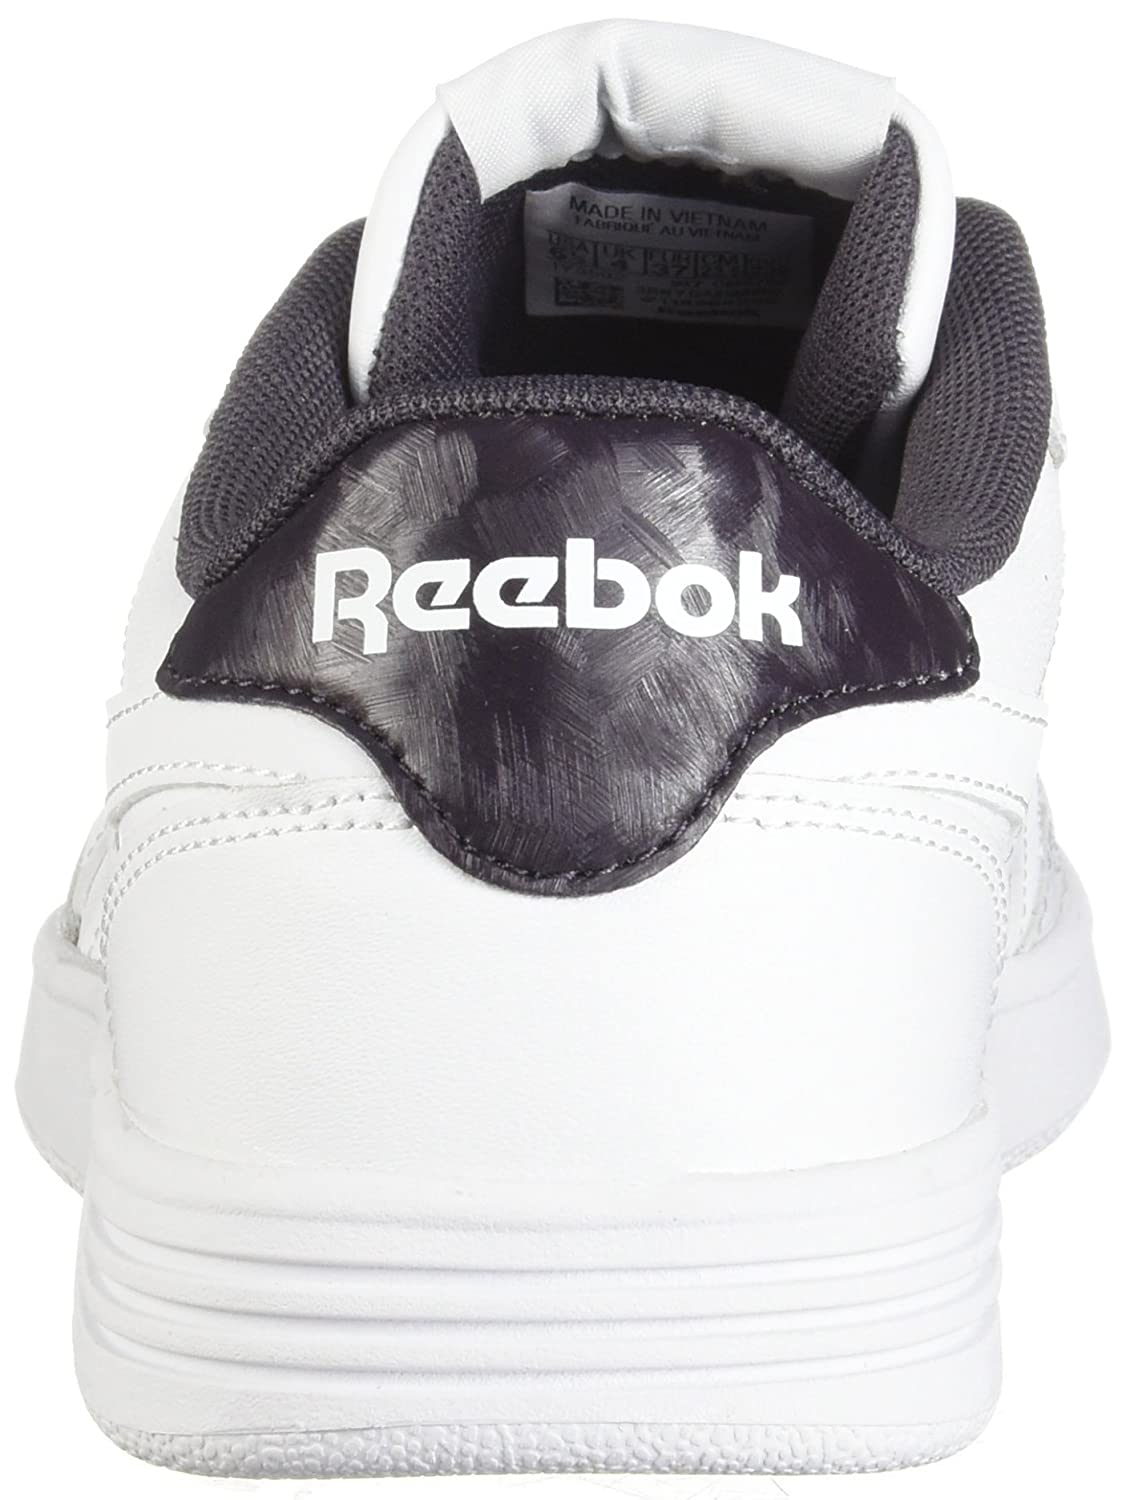 962acda2a1c5 Reebok Women s Royal Techque T LX Sneakers  Amazon.ca  Shoes   Handbags